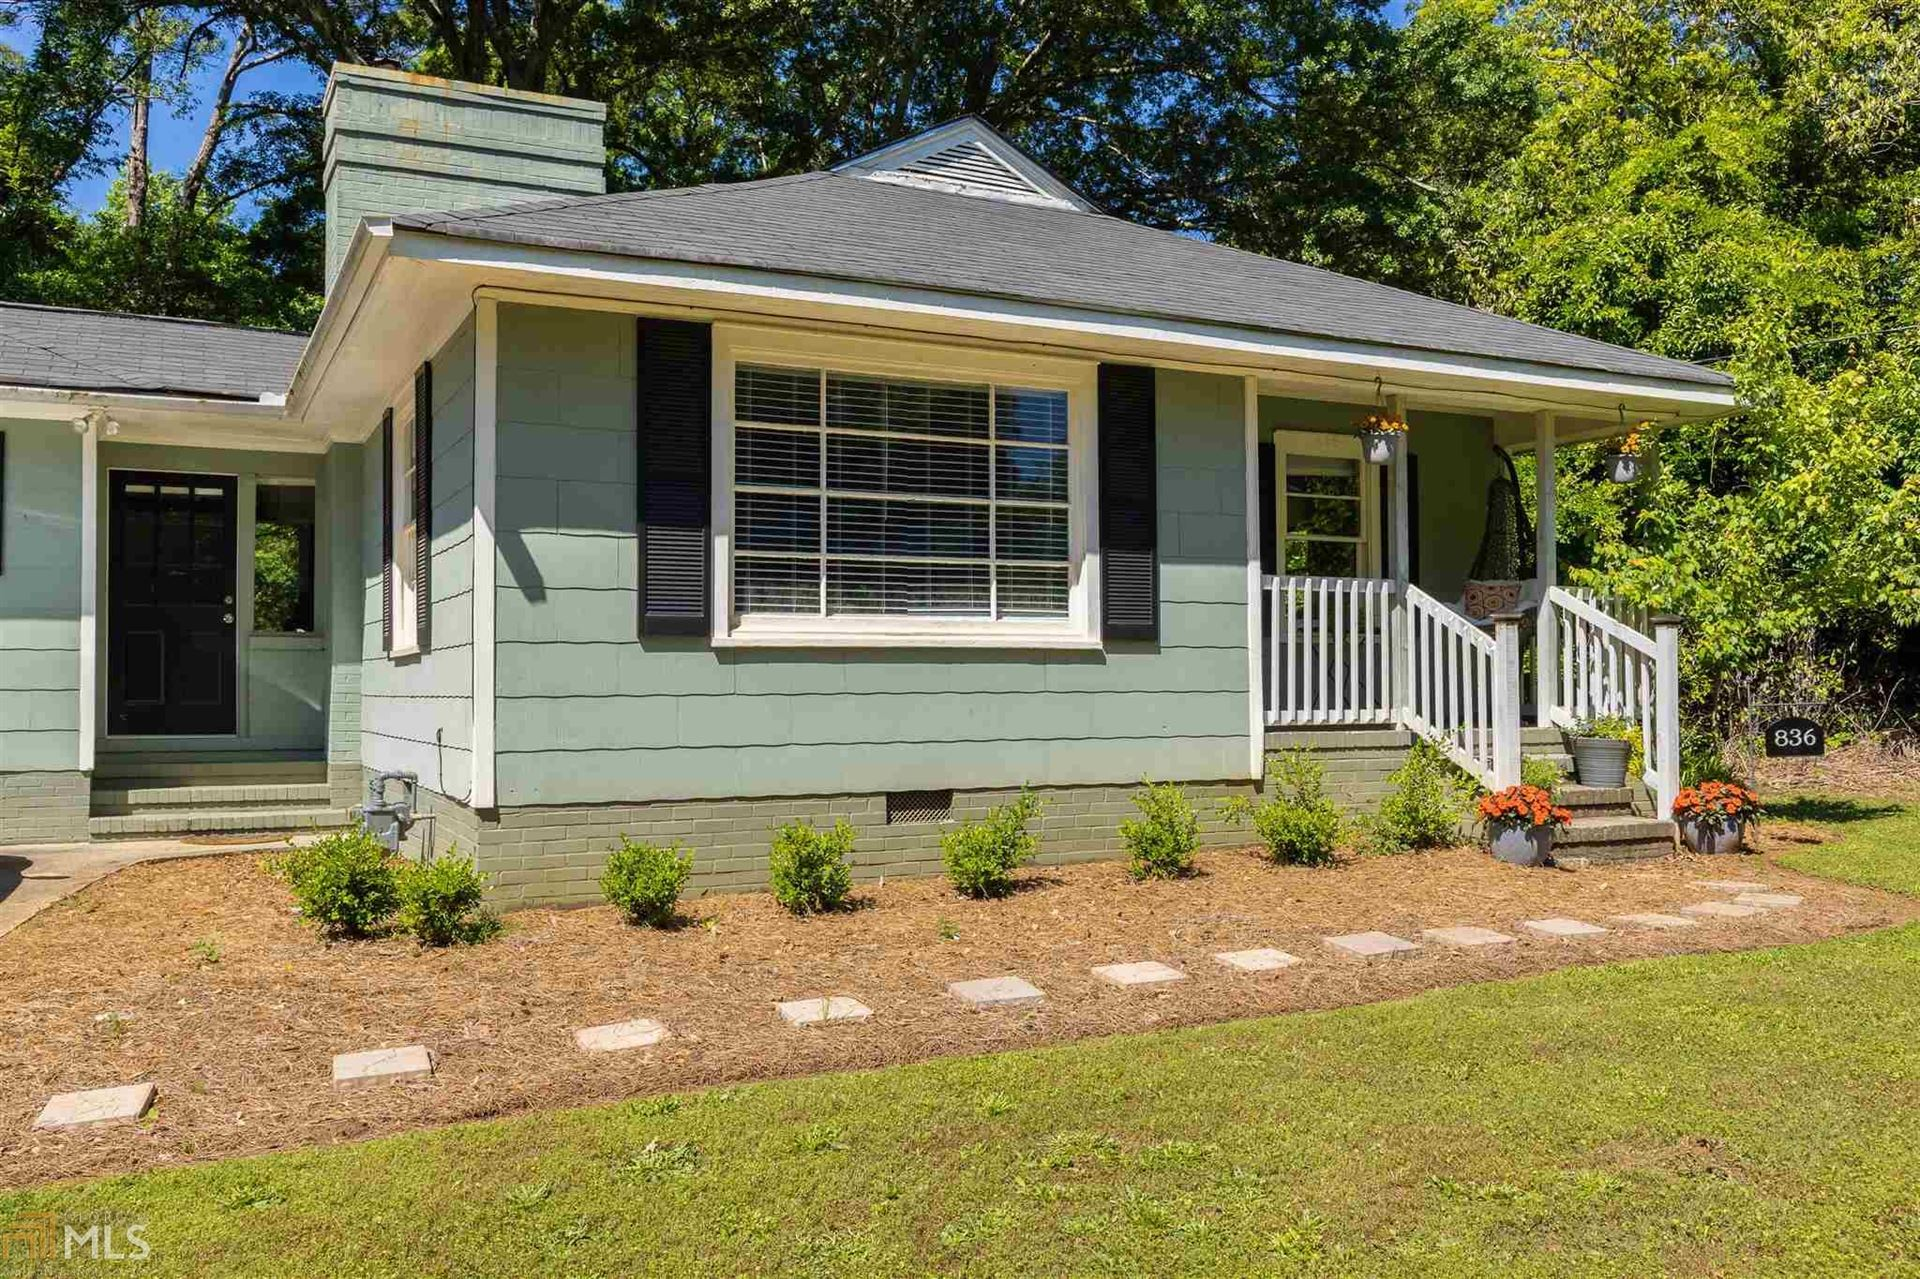 Photo of 836 McLaurin, Griffin, GA 30224 (MLS # 8975595)